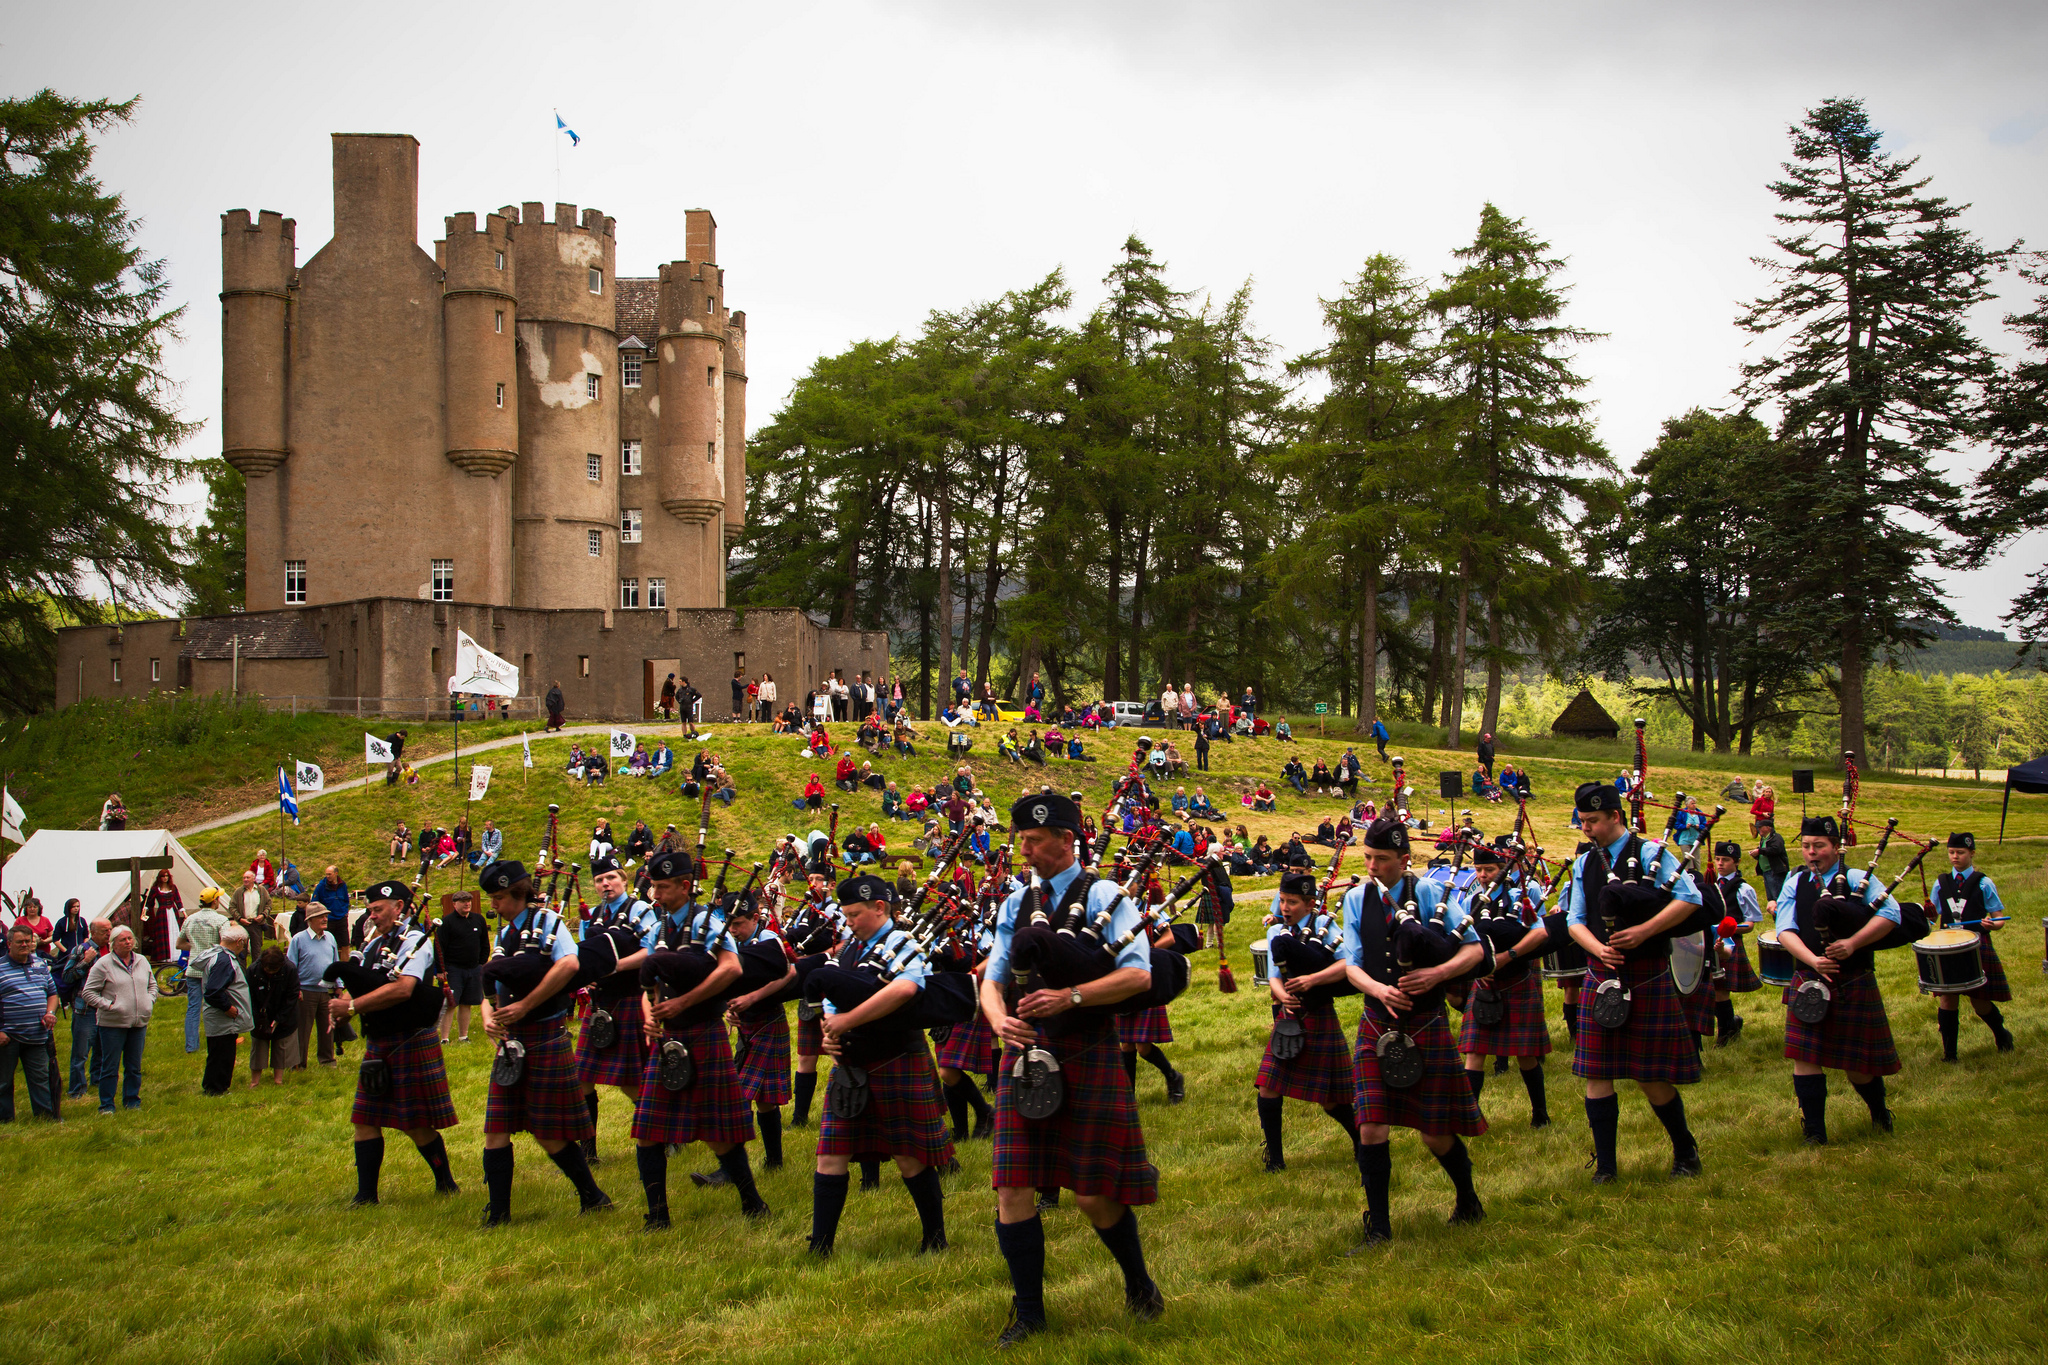 Enjoy a thoroughly Scottish day with the Braemar Gathering via Drumscot